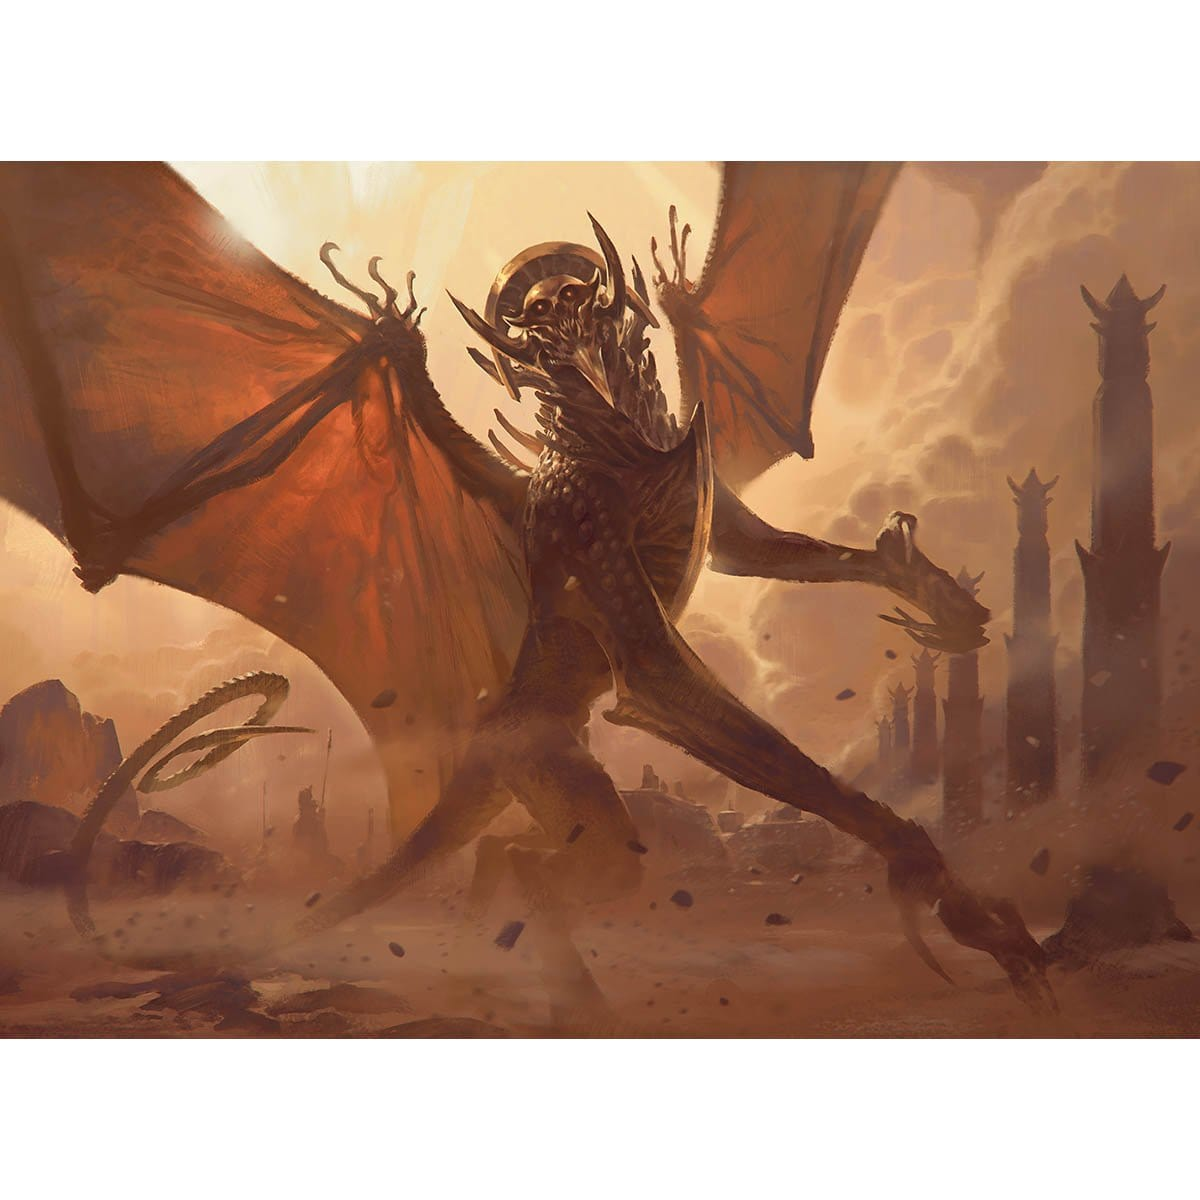 Archfiend of Ifnir Print - Print - Original Magic Art - Accessories for Magic the Gathering and other card games